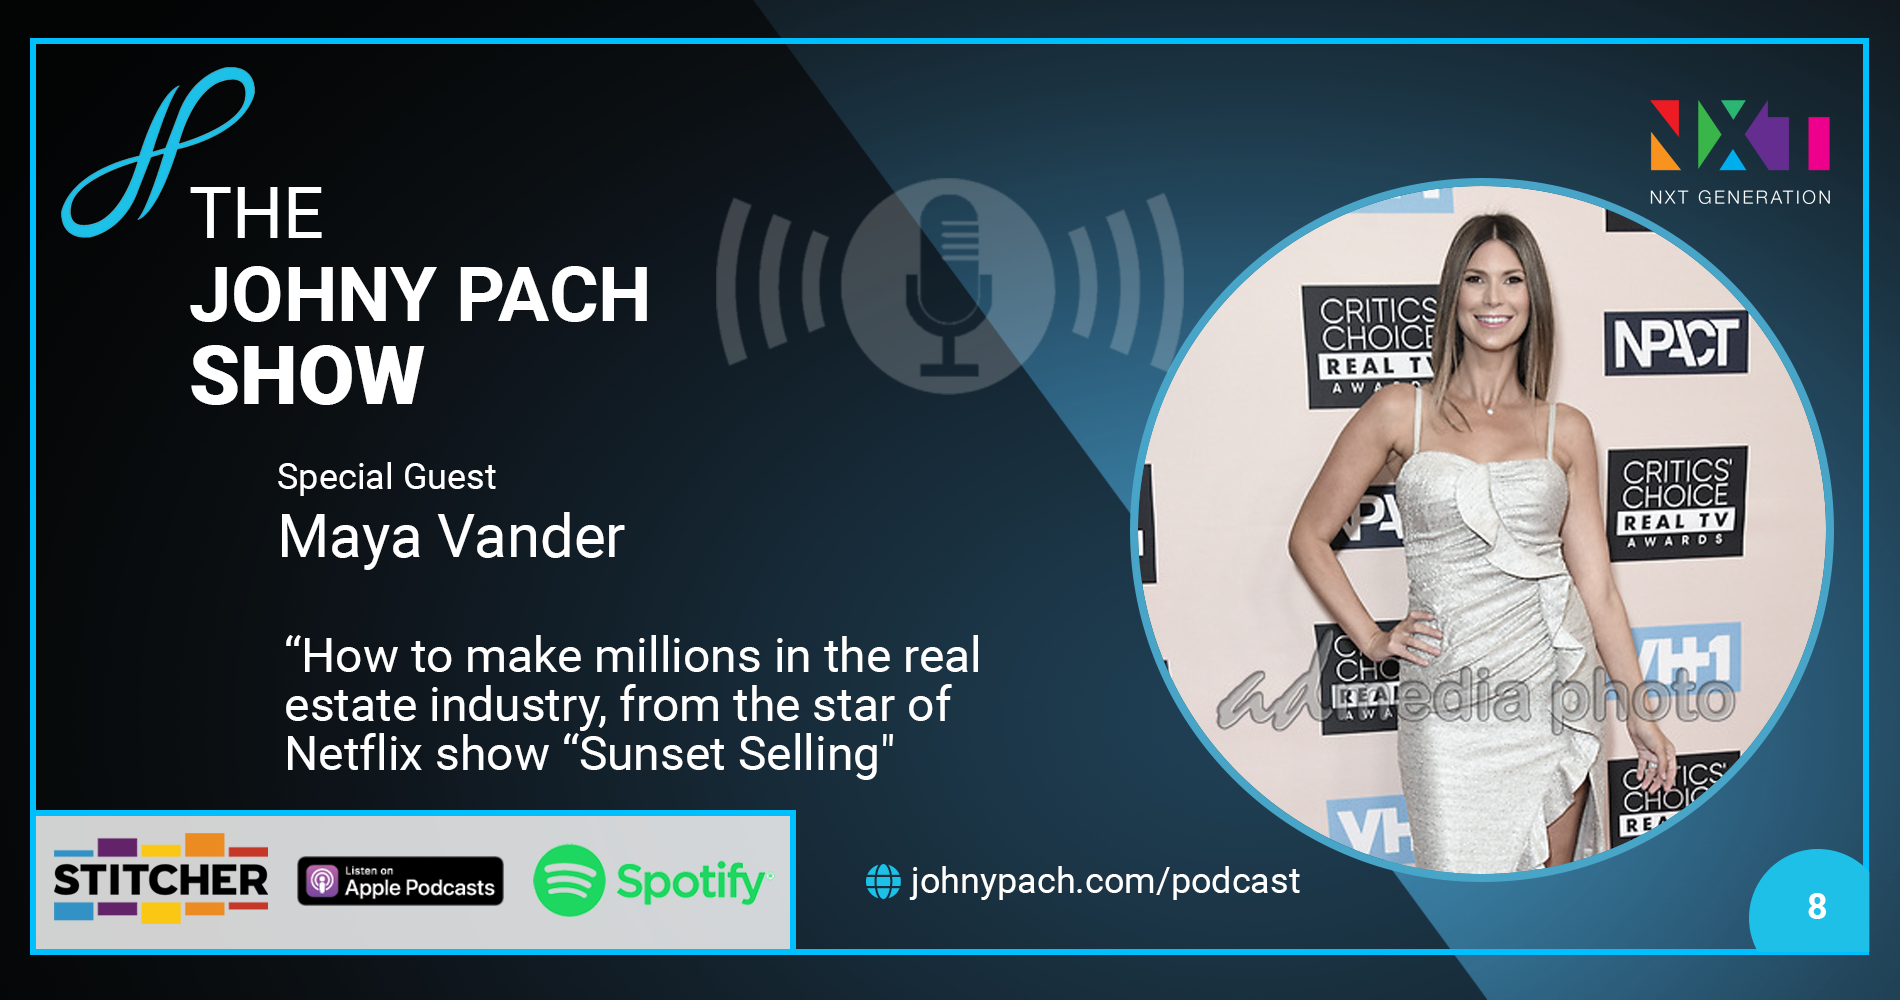 //johnypach.com/wp-content/uploads/2020/06/Podcast-MyaVander-ep8-1900x1000-1.png